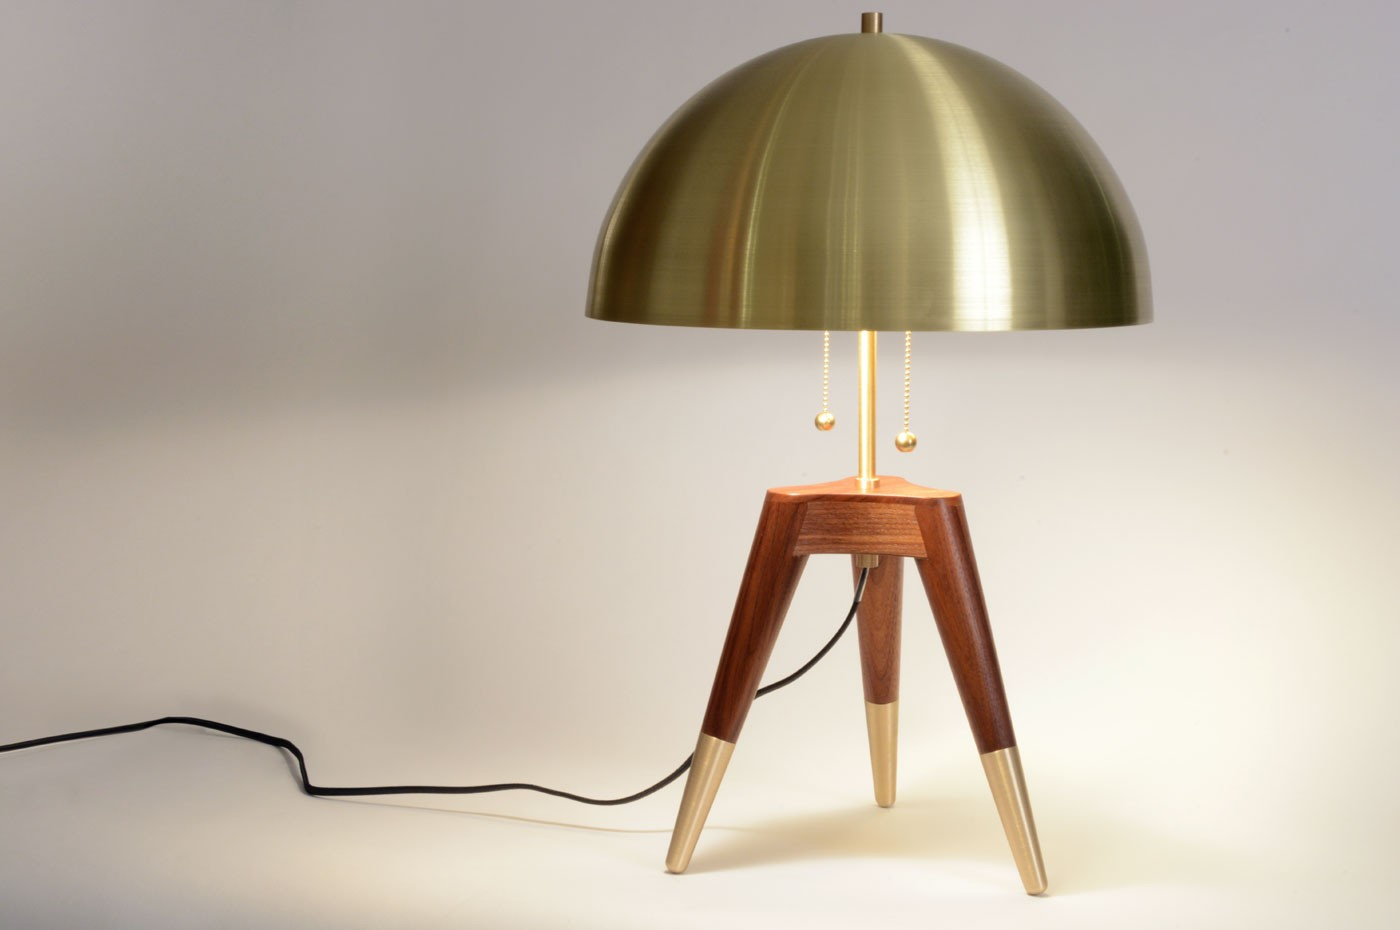 fife-tripod-table-lamp-1.jpg